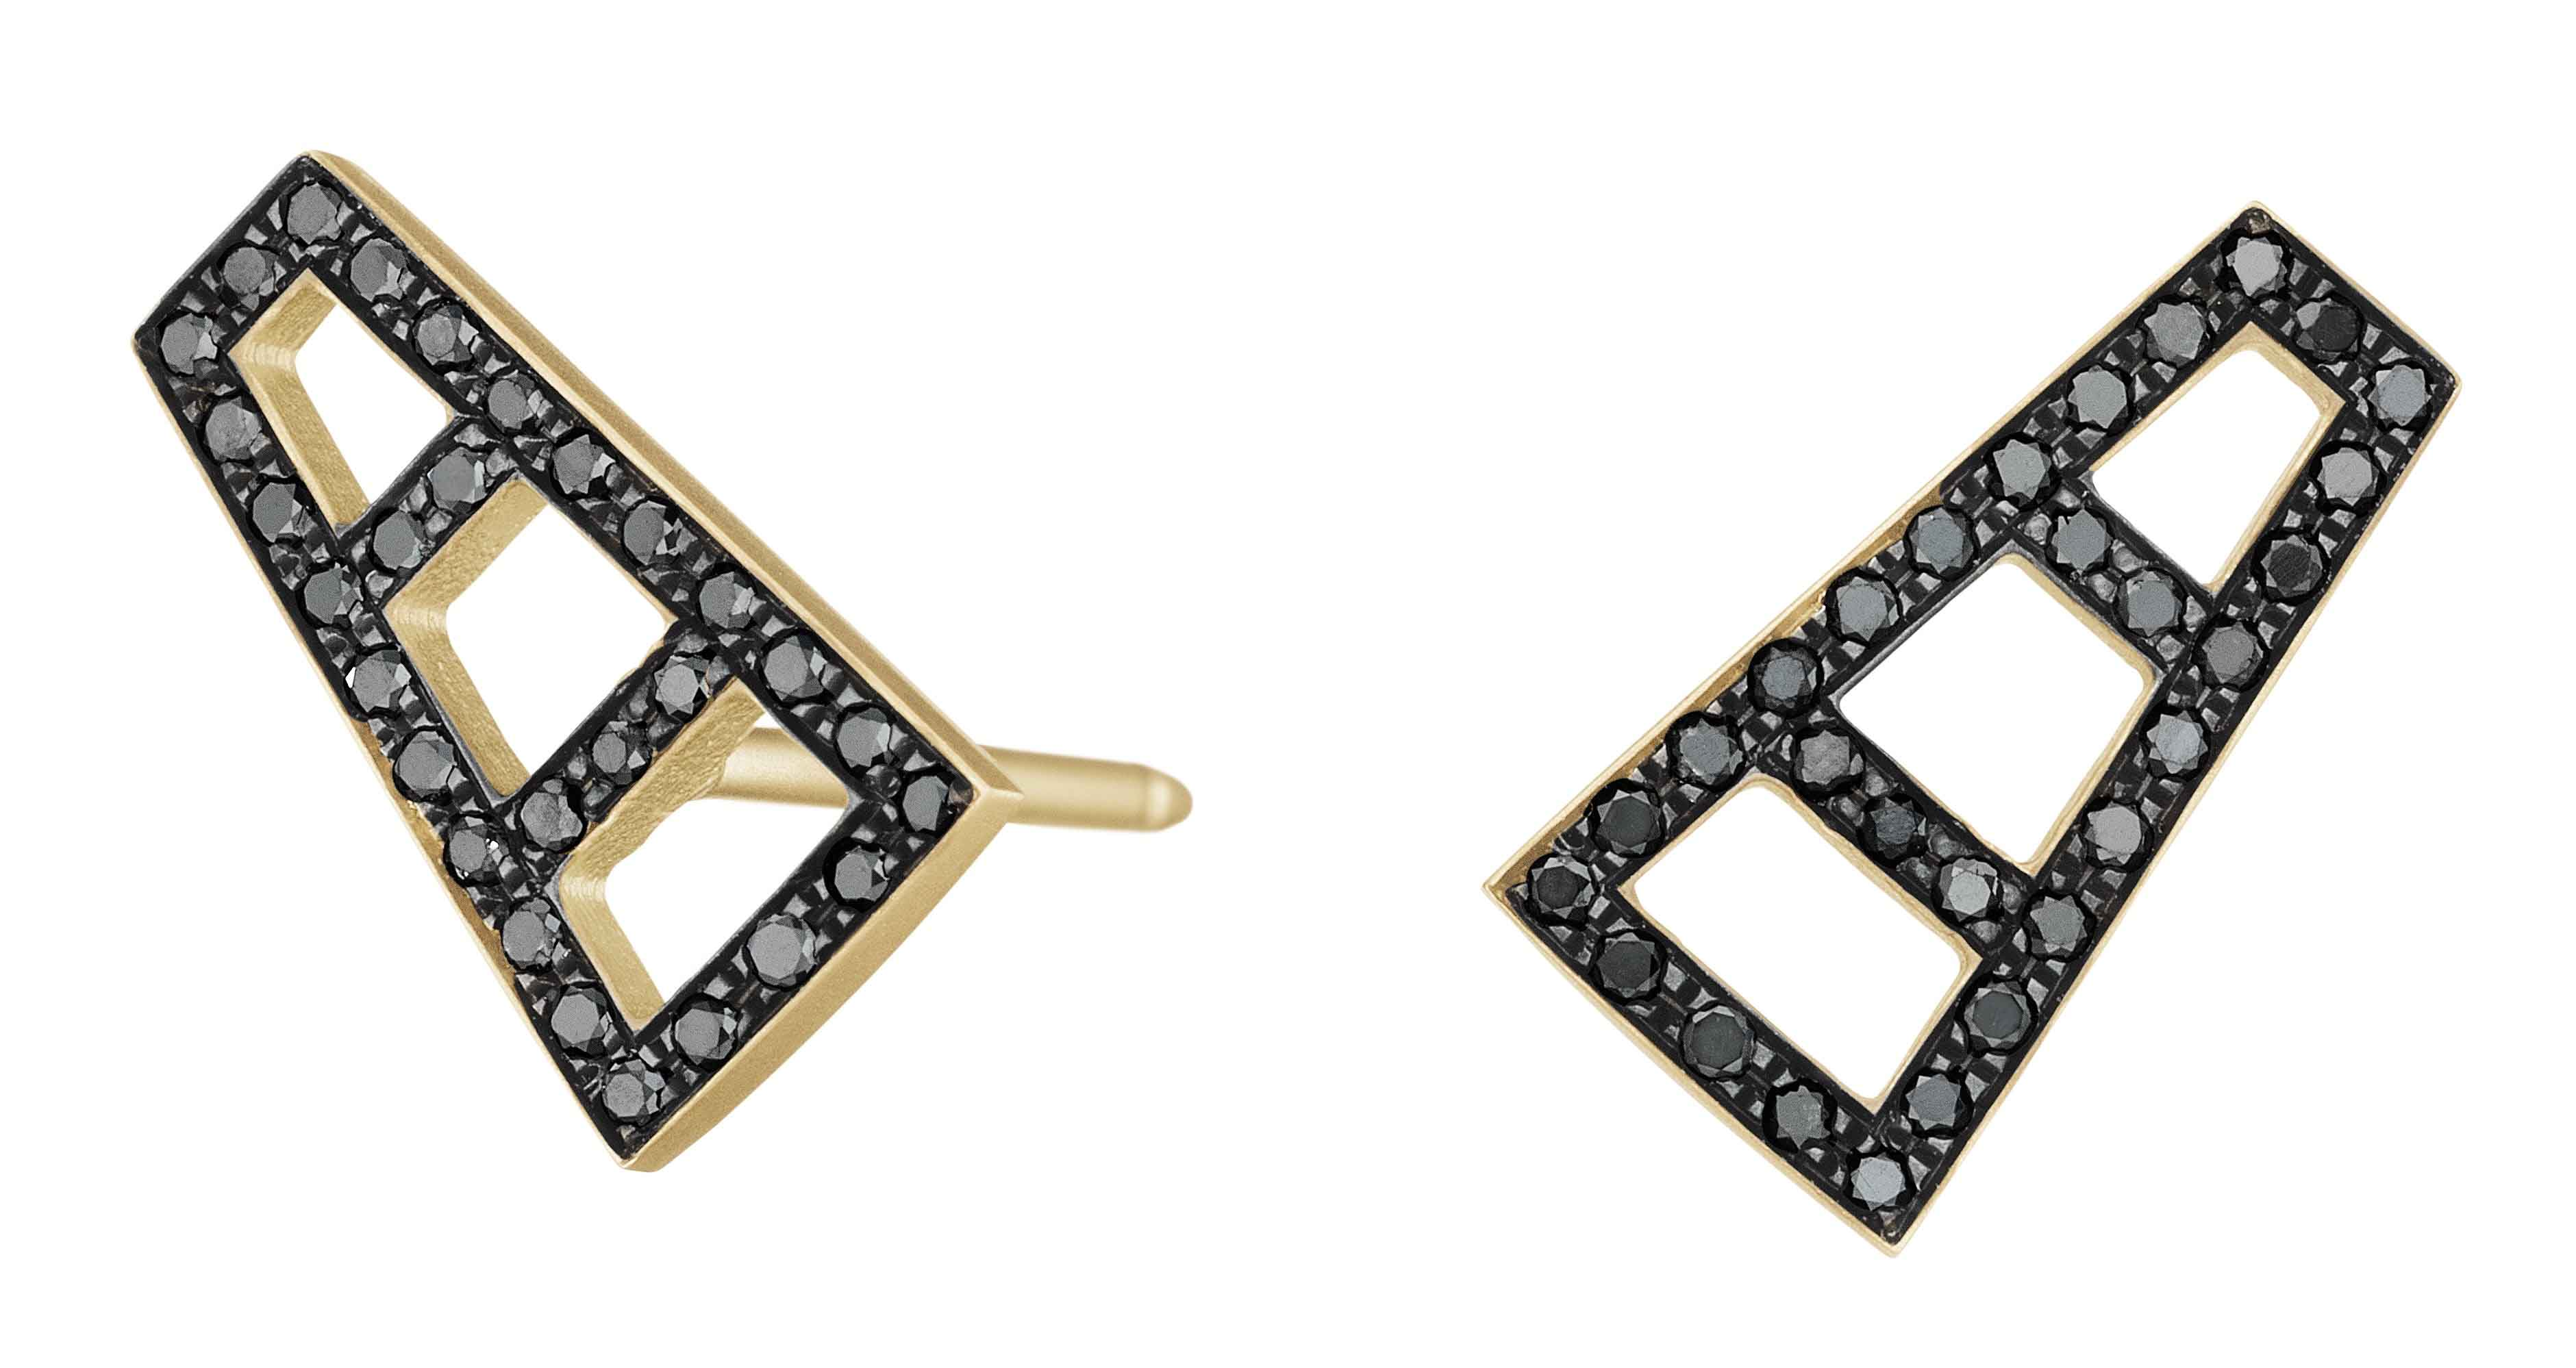 Petite Ladder stud earrings in 18k yellow gold and black rhodium